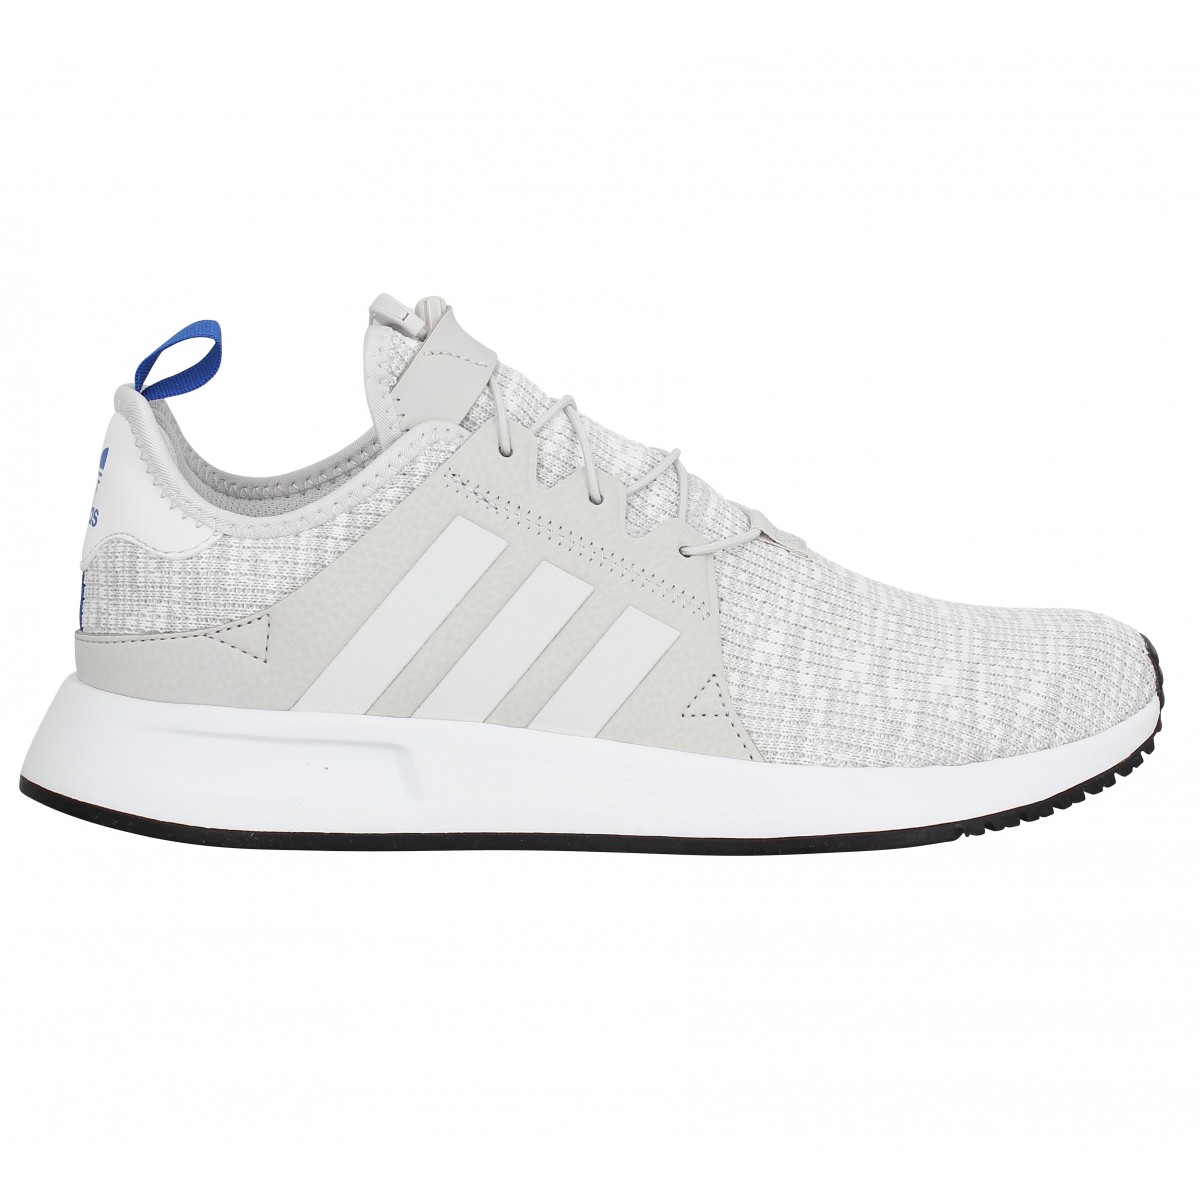 Chaussures Adidas X_PLR homme